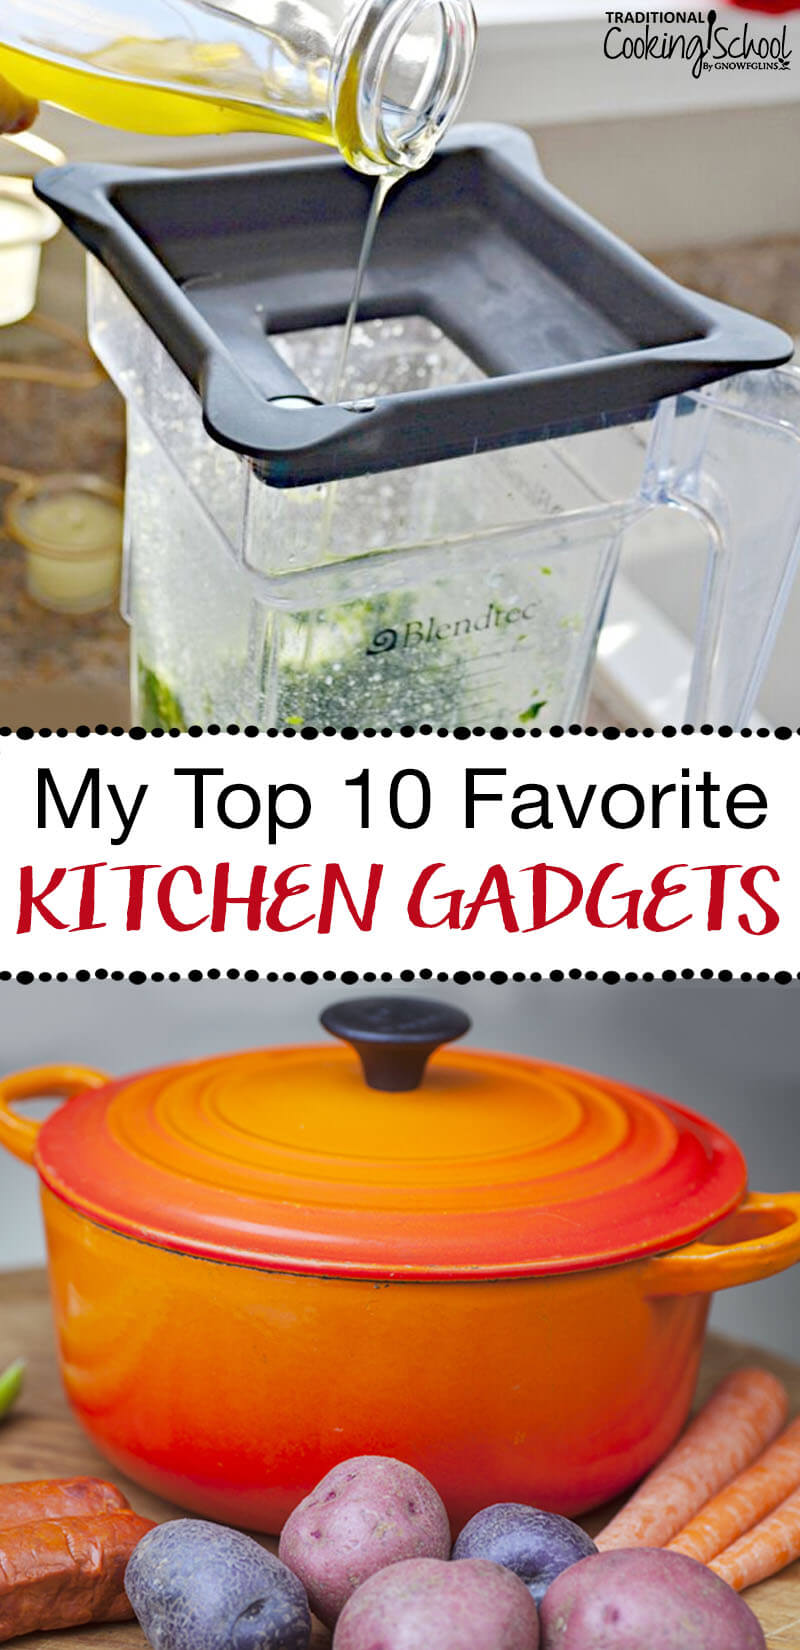 "My Top 10 Favorite Kitchen Gadgets | When I began my Traditional Cooking journey four years ago, I was surprised that my ""fully stocked kitchen"" wasn't as fully stocked as I thought. Like changing our way of eating, it's been a process to get the right tools. 